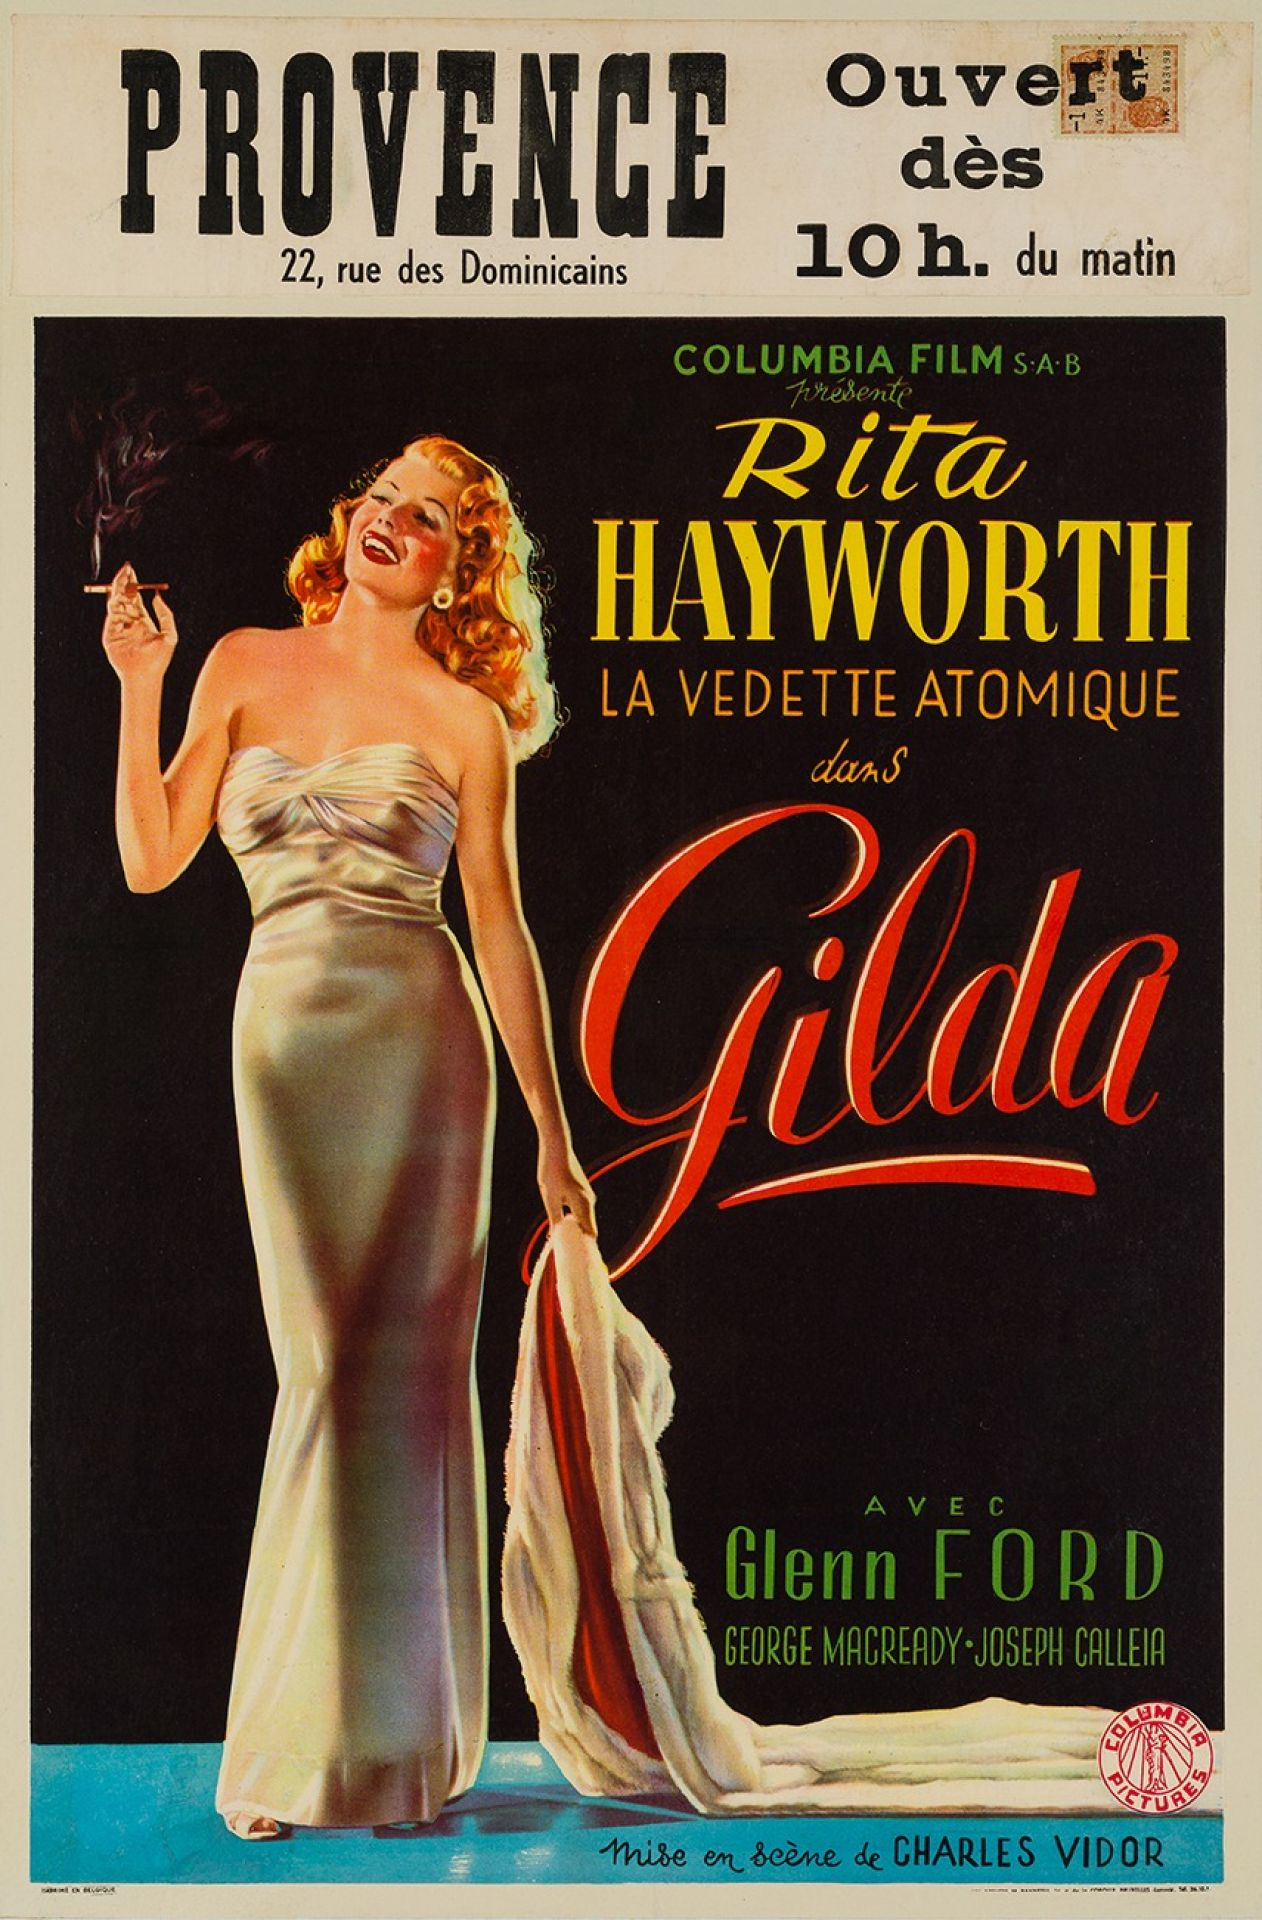 Original Gilda 1946 Belgian Film Movie Poster. Rita Hayworth